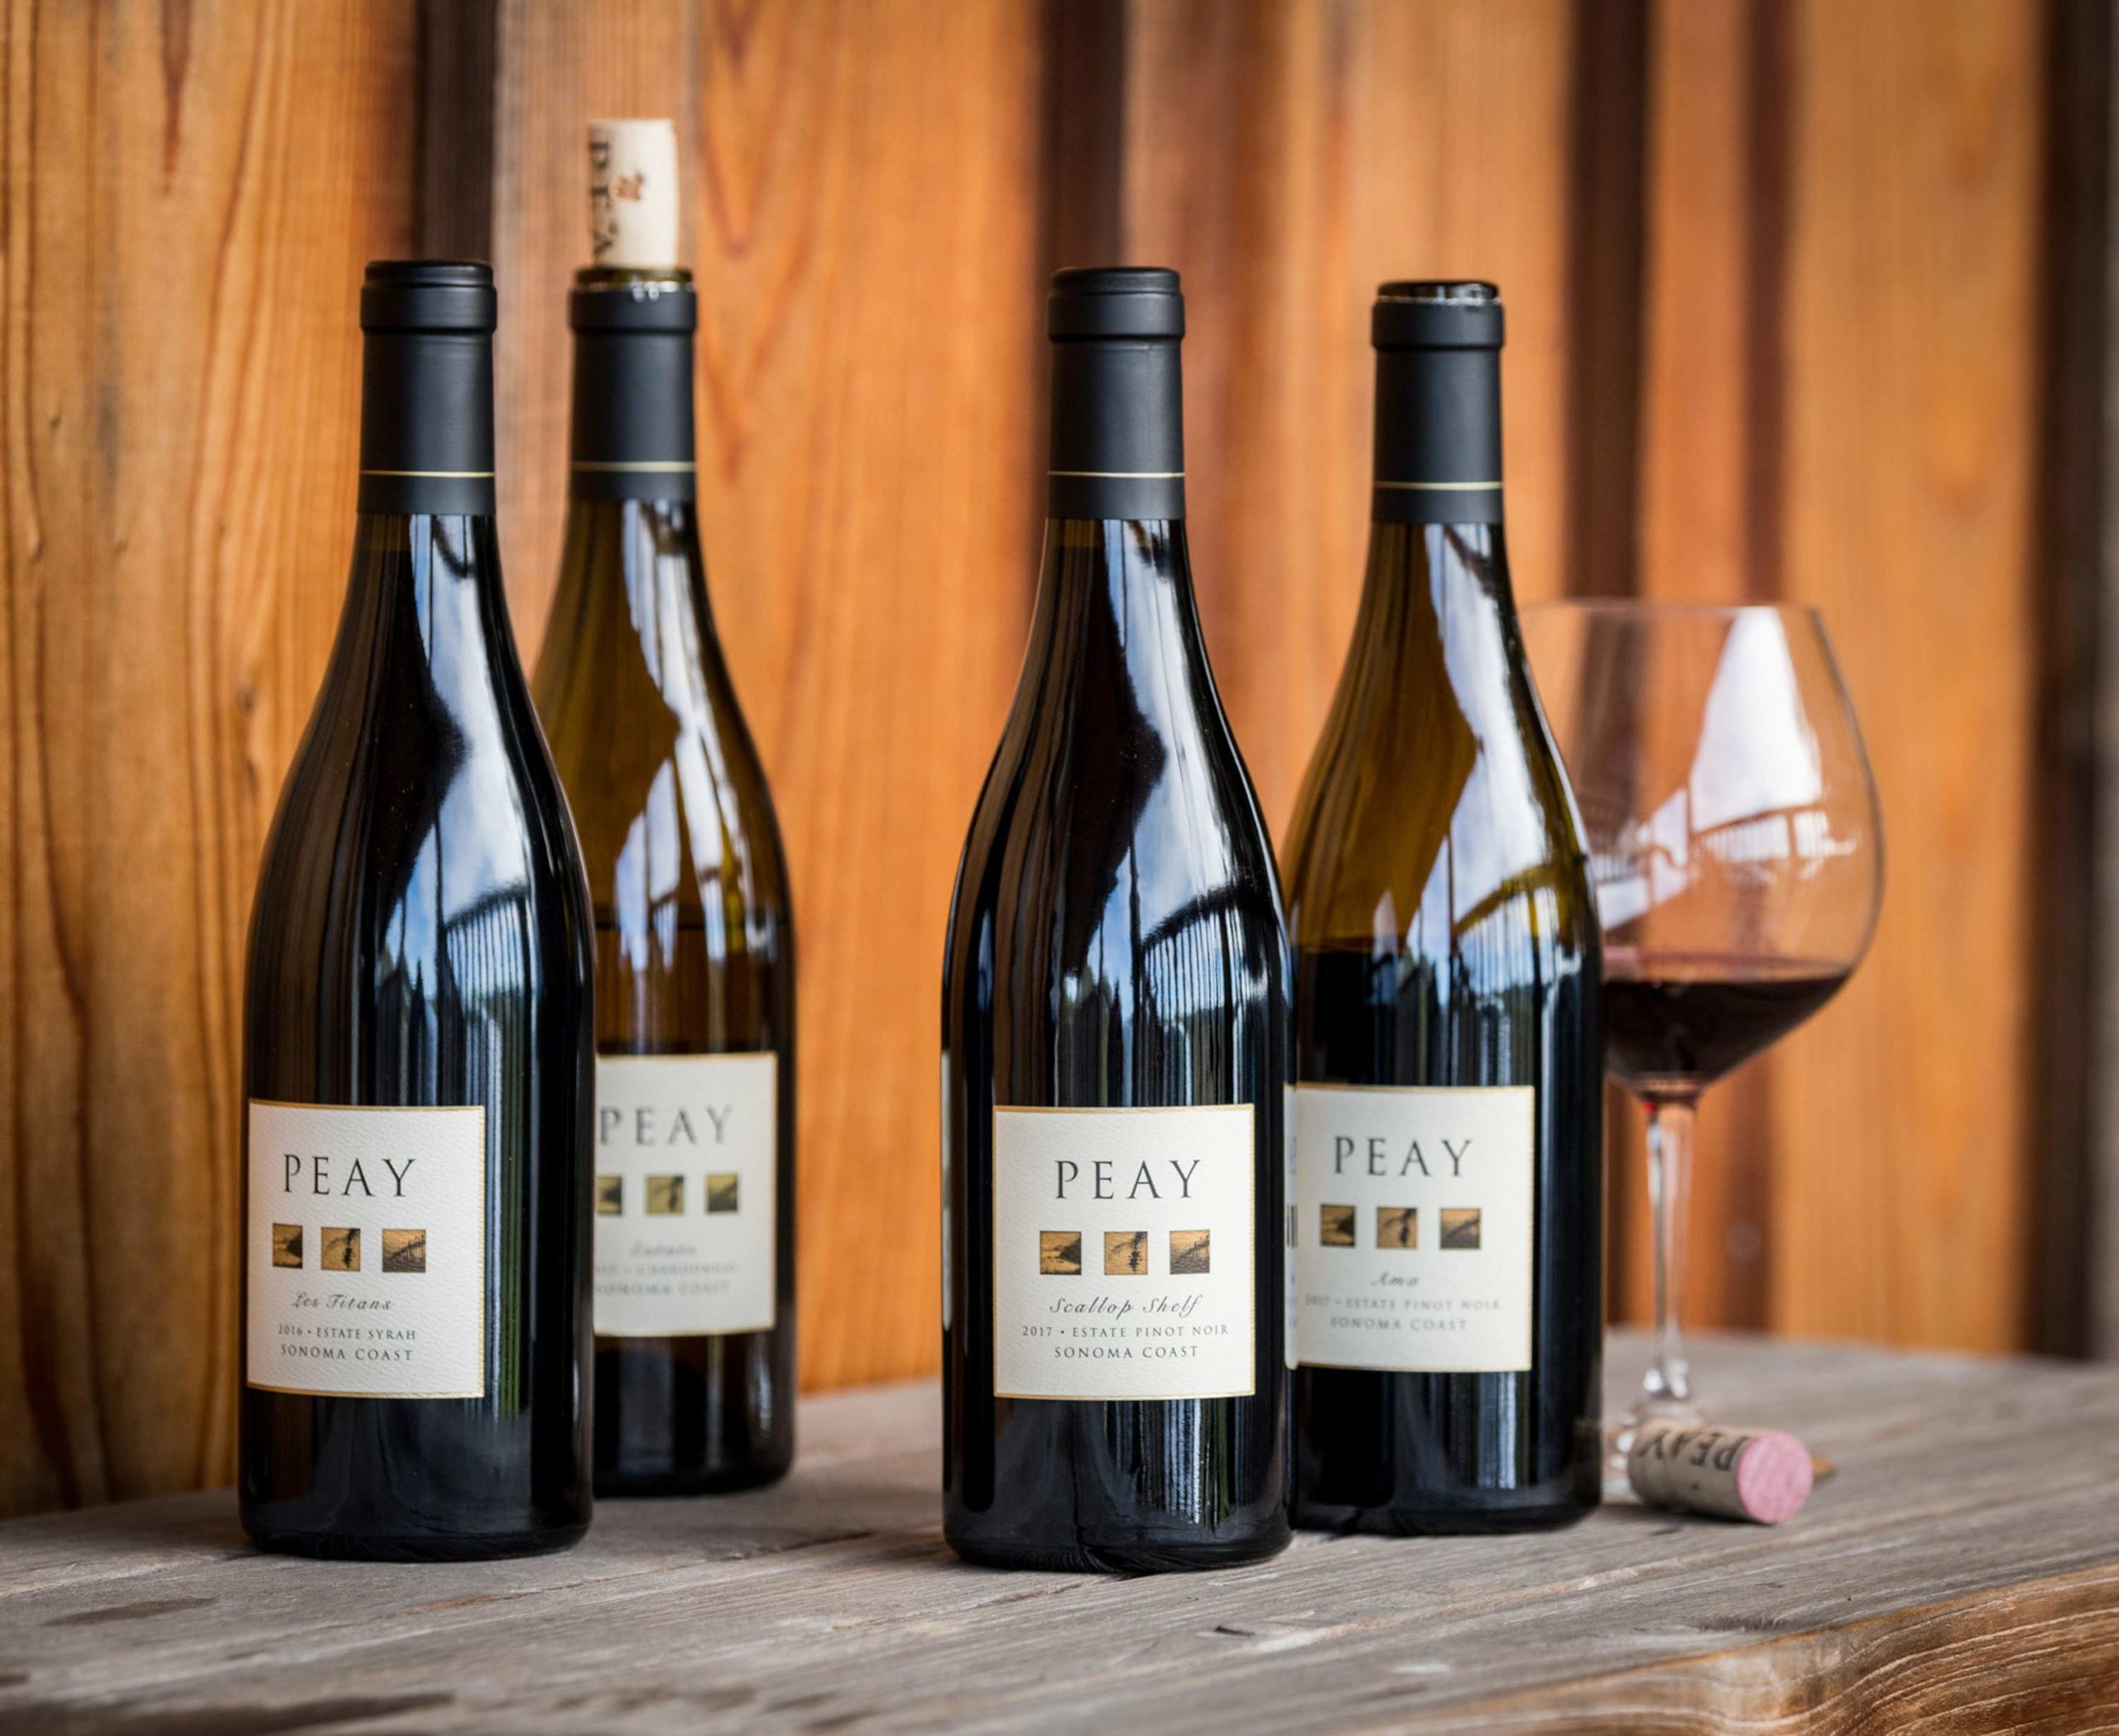 Featured image for Article: 2017 Peay Vineyards Scallop Shelf Estate Pinot noir, Sonoma Coast